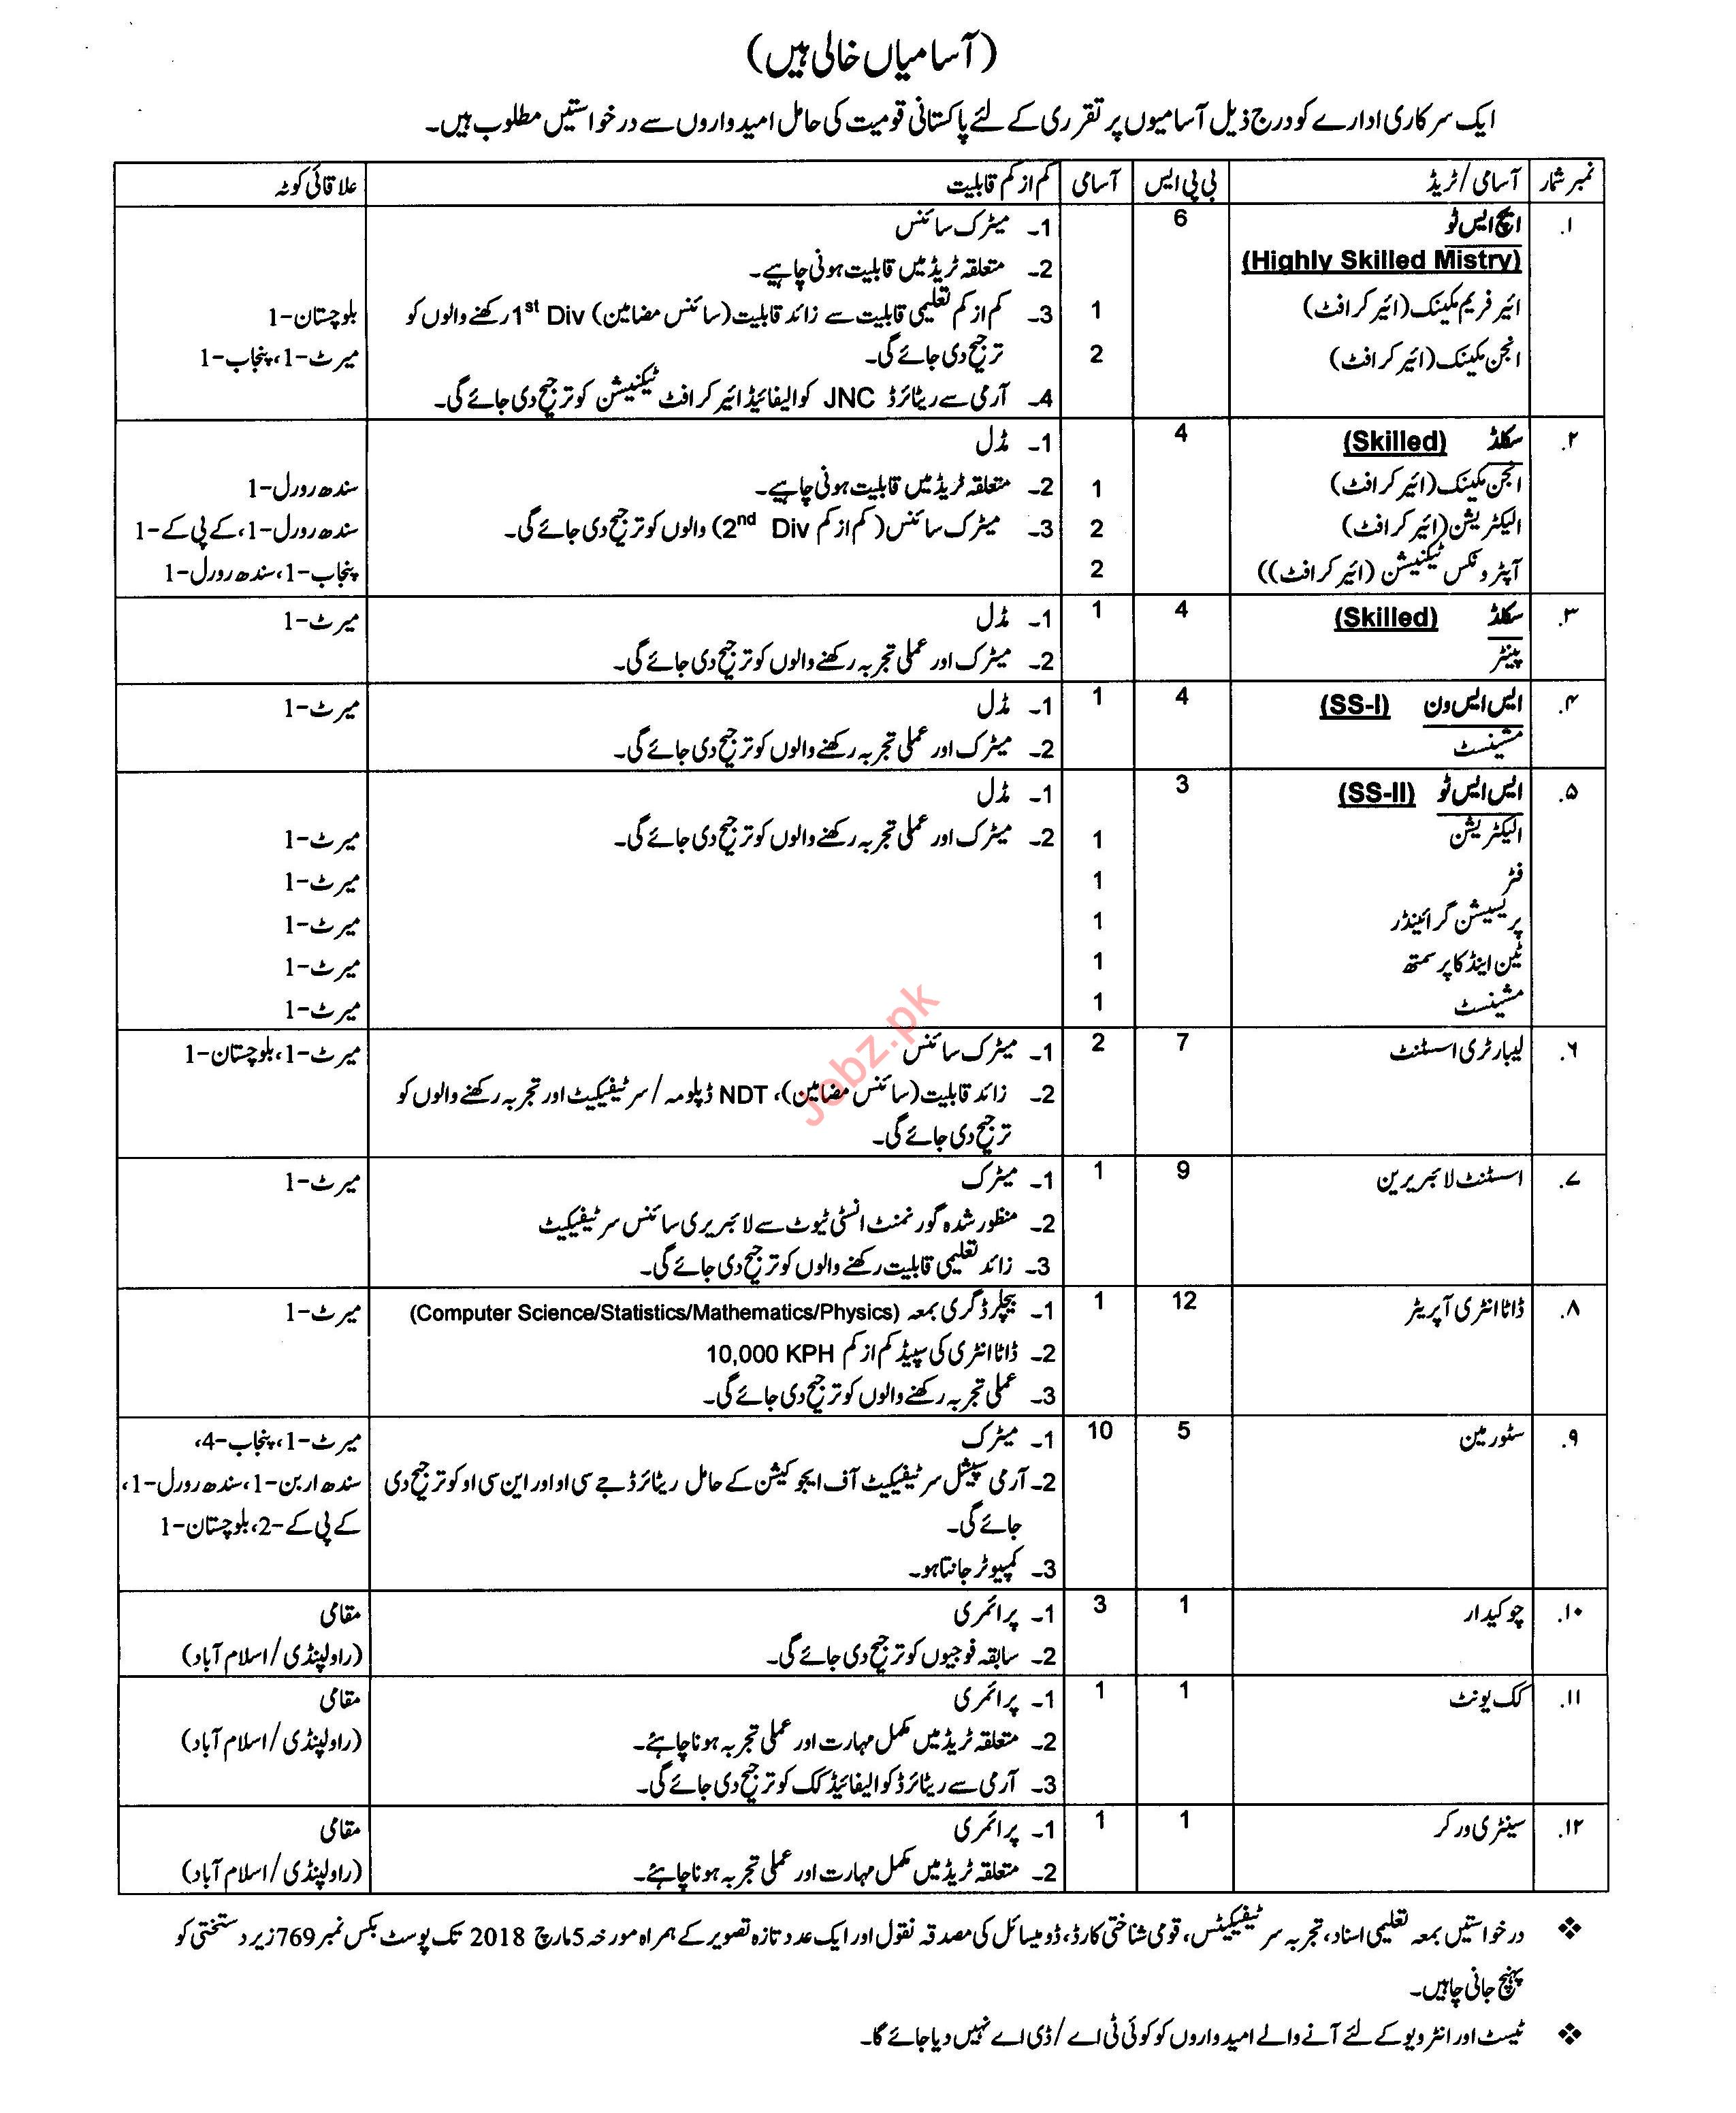 503 AVN Base Workshop Rawalpindi Jobs 2018